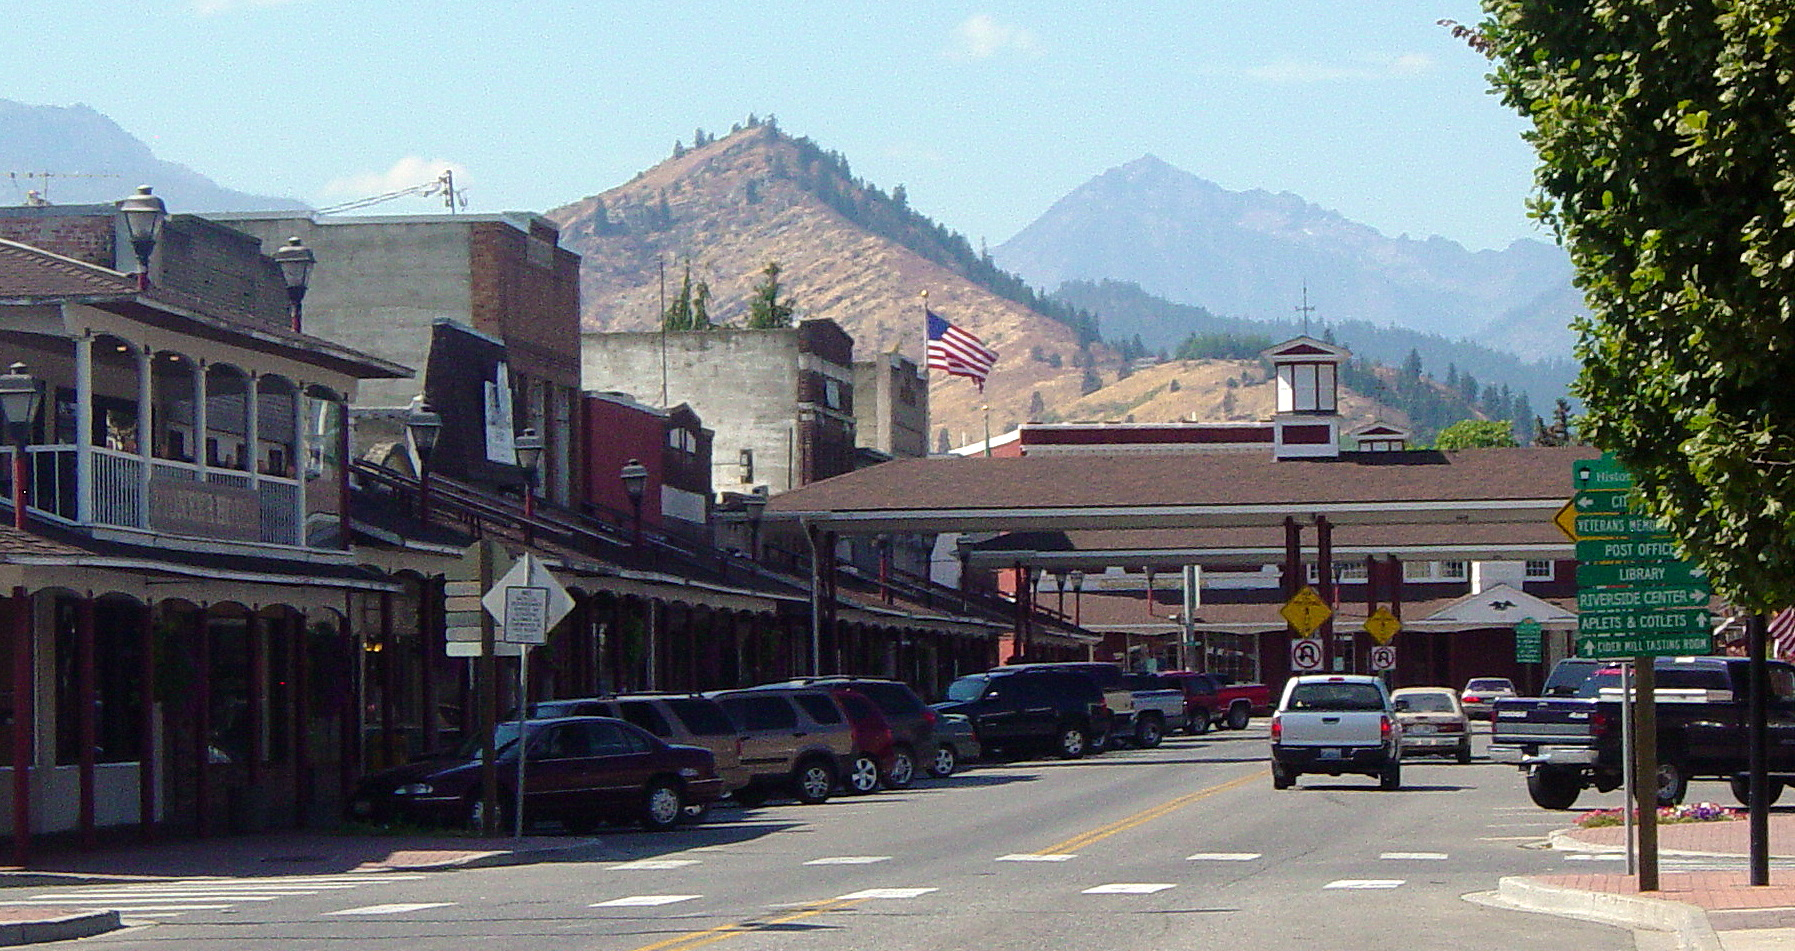 shot of small town with cars and mountains in backgroud